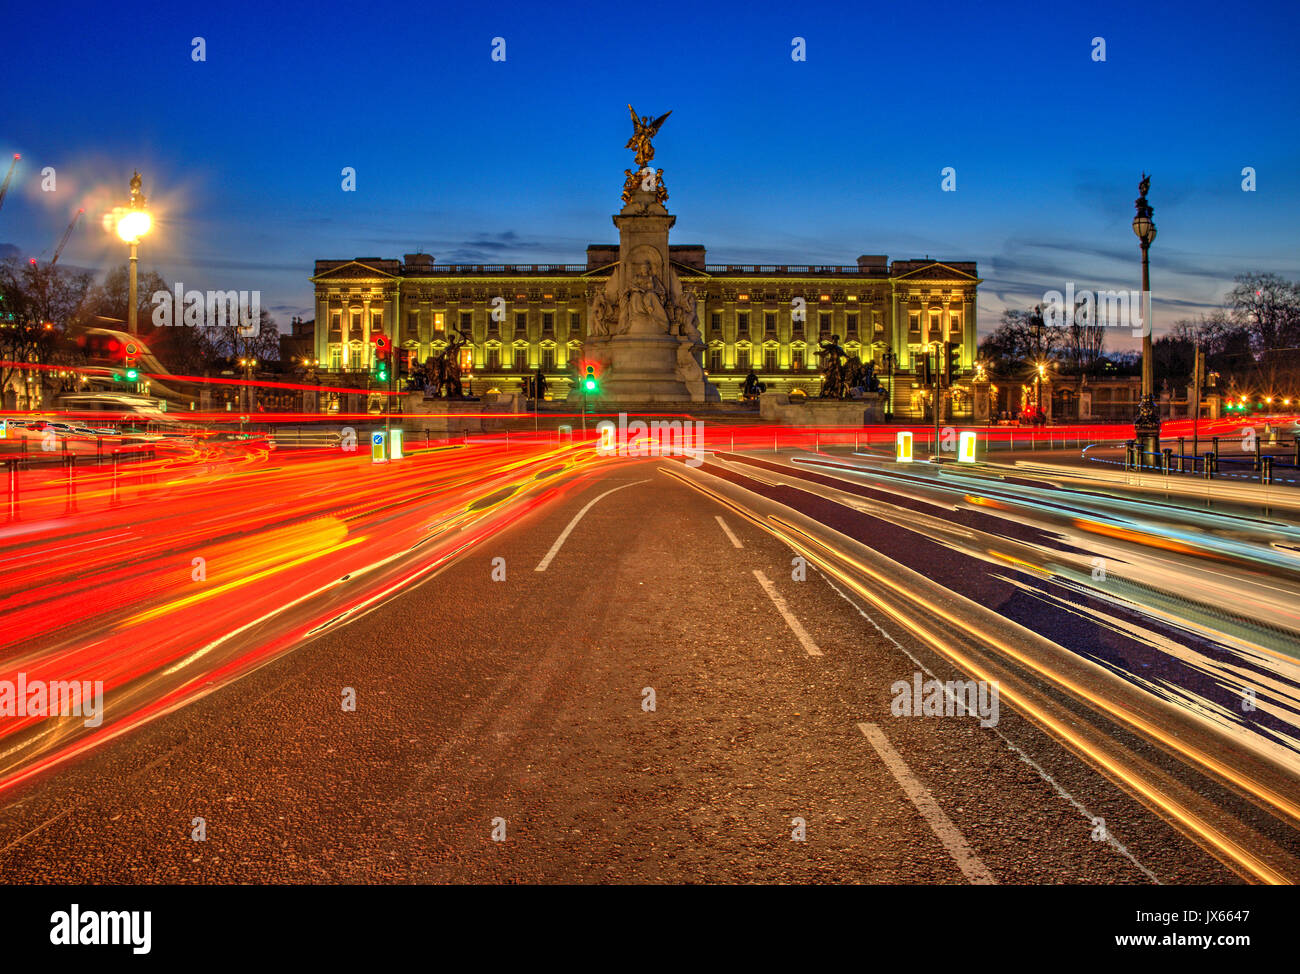 Buckingham palace London at night with traffic trails - Stock Image